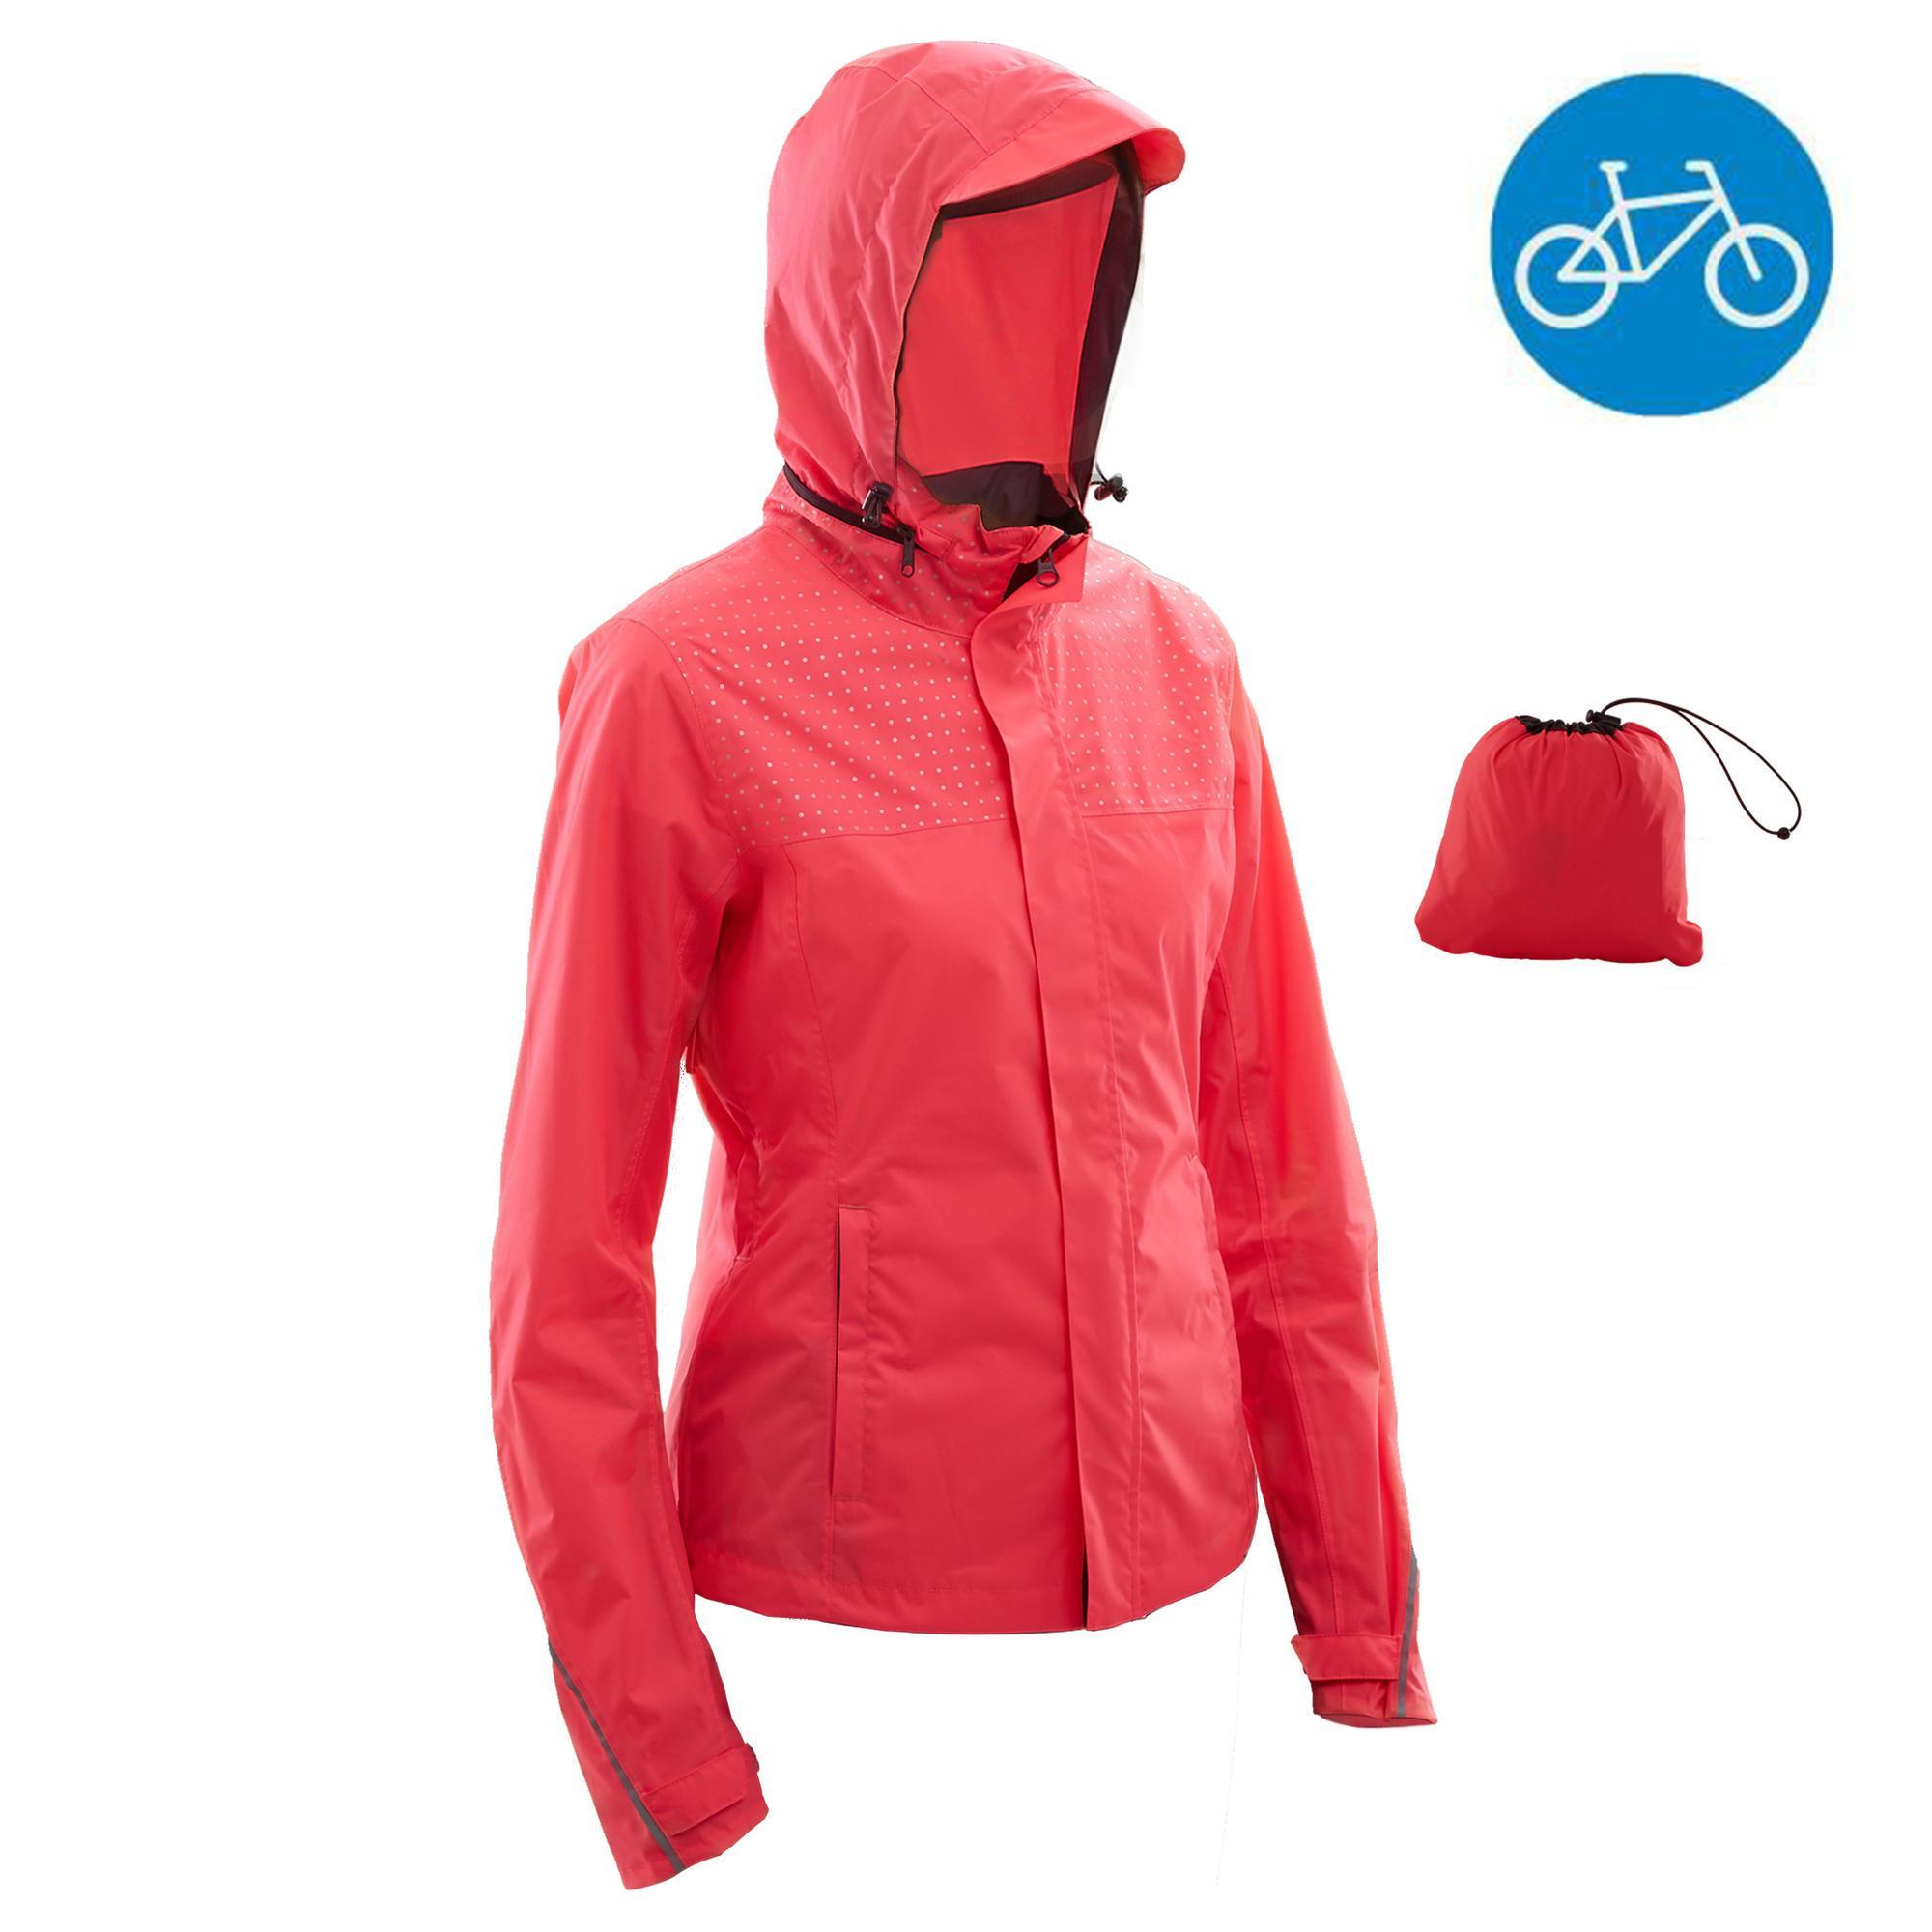 fahrrad regenjacke city 100 damen rosa b 39 twin decathlon. Black Bedroom Furniture Sets. Home Design Ideas